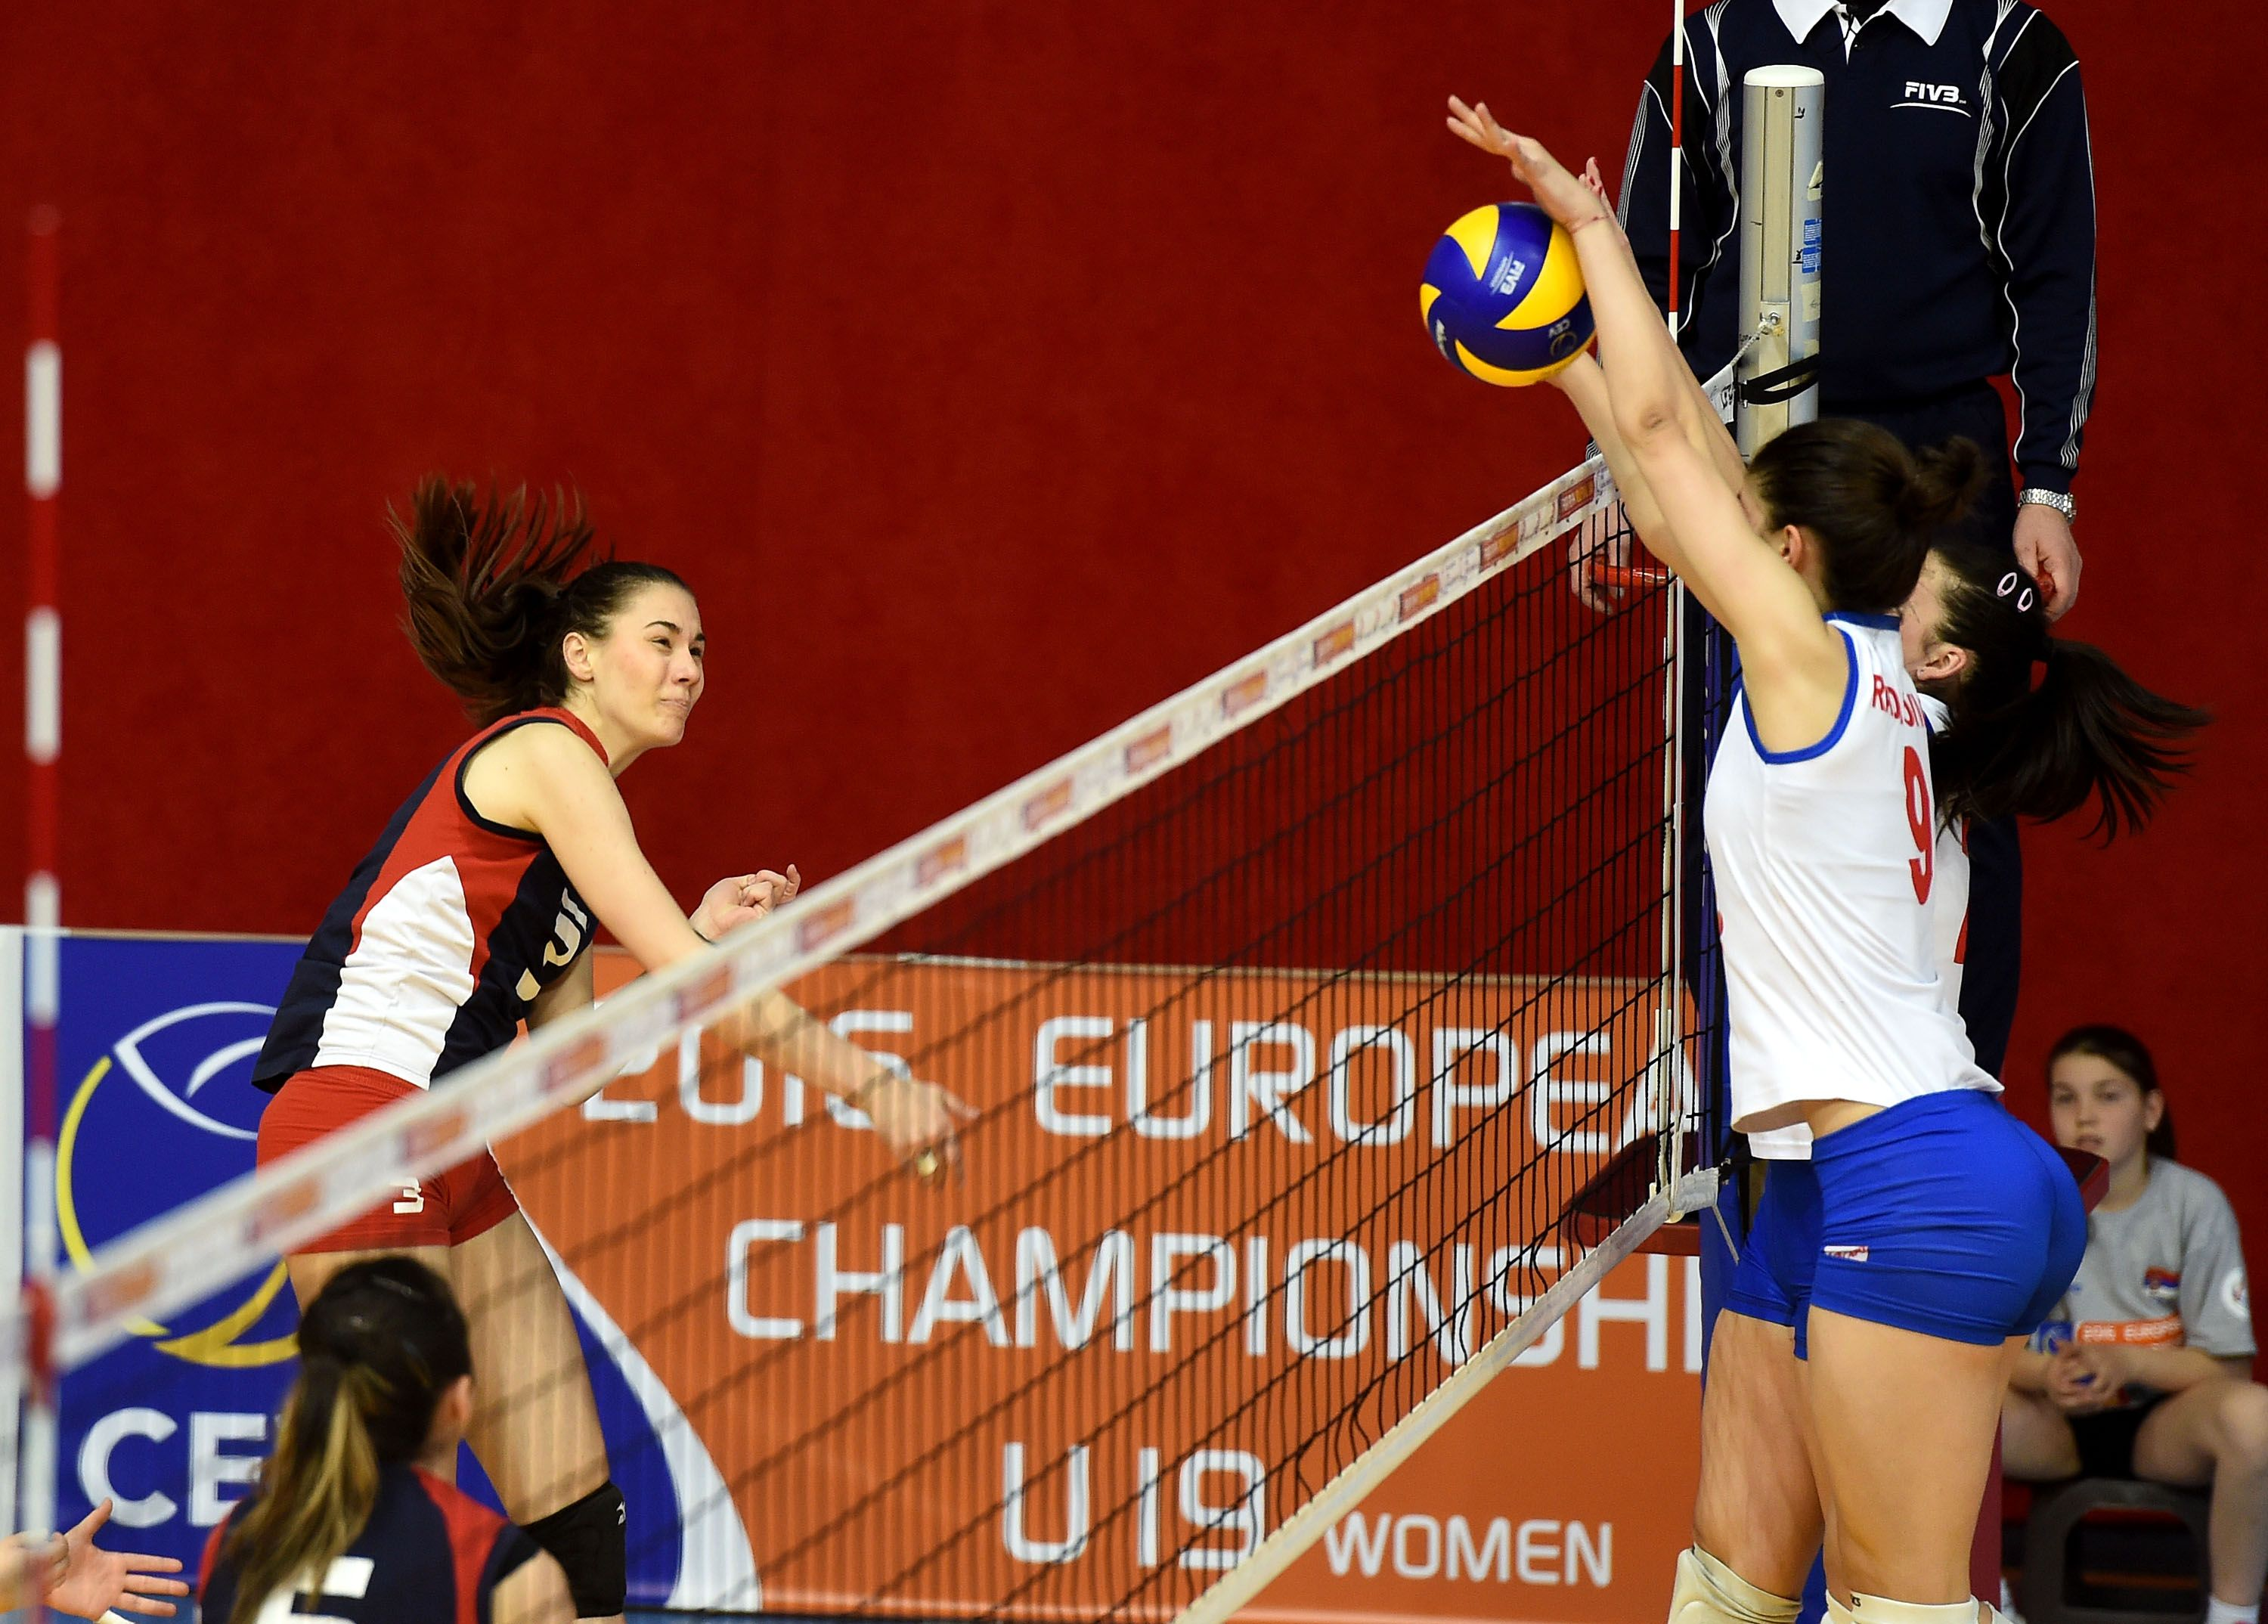 Galerija Fotografija Odbojkaskog Saveza Srbije Volleyball Federation Of Serbia Picture Gallery Click Image To Close This Wi Image Picture Gallery Volleyball